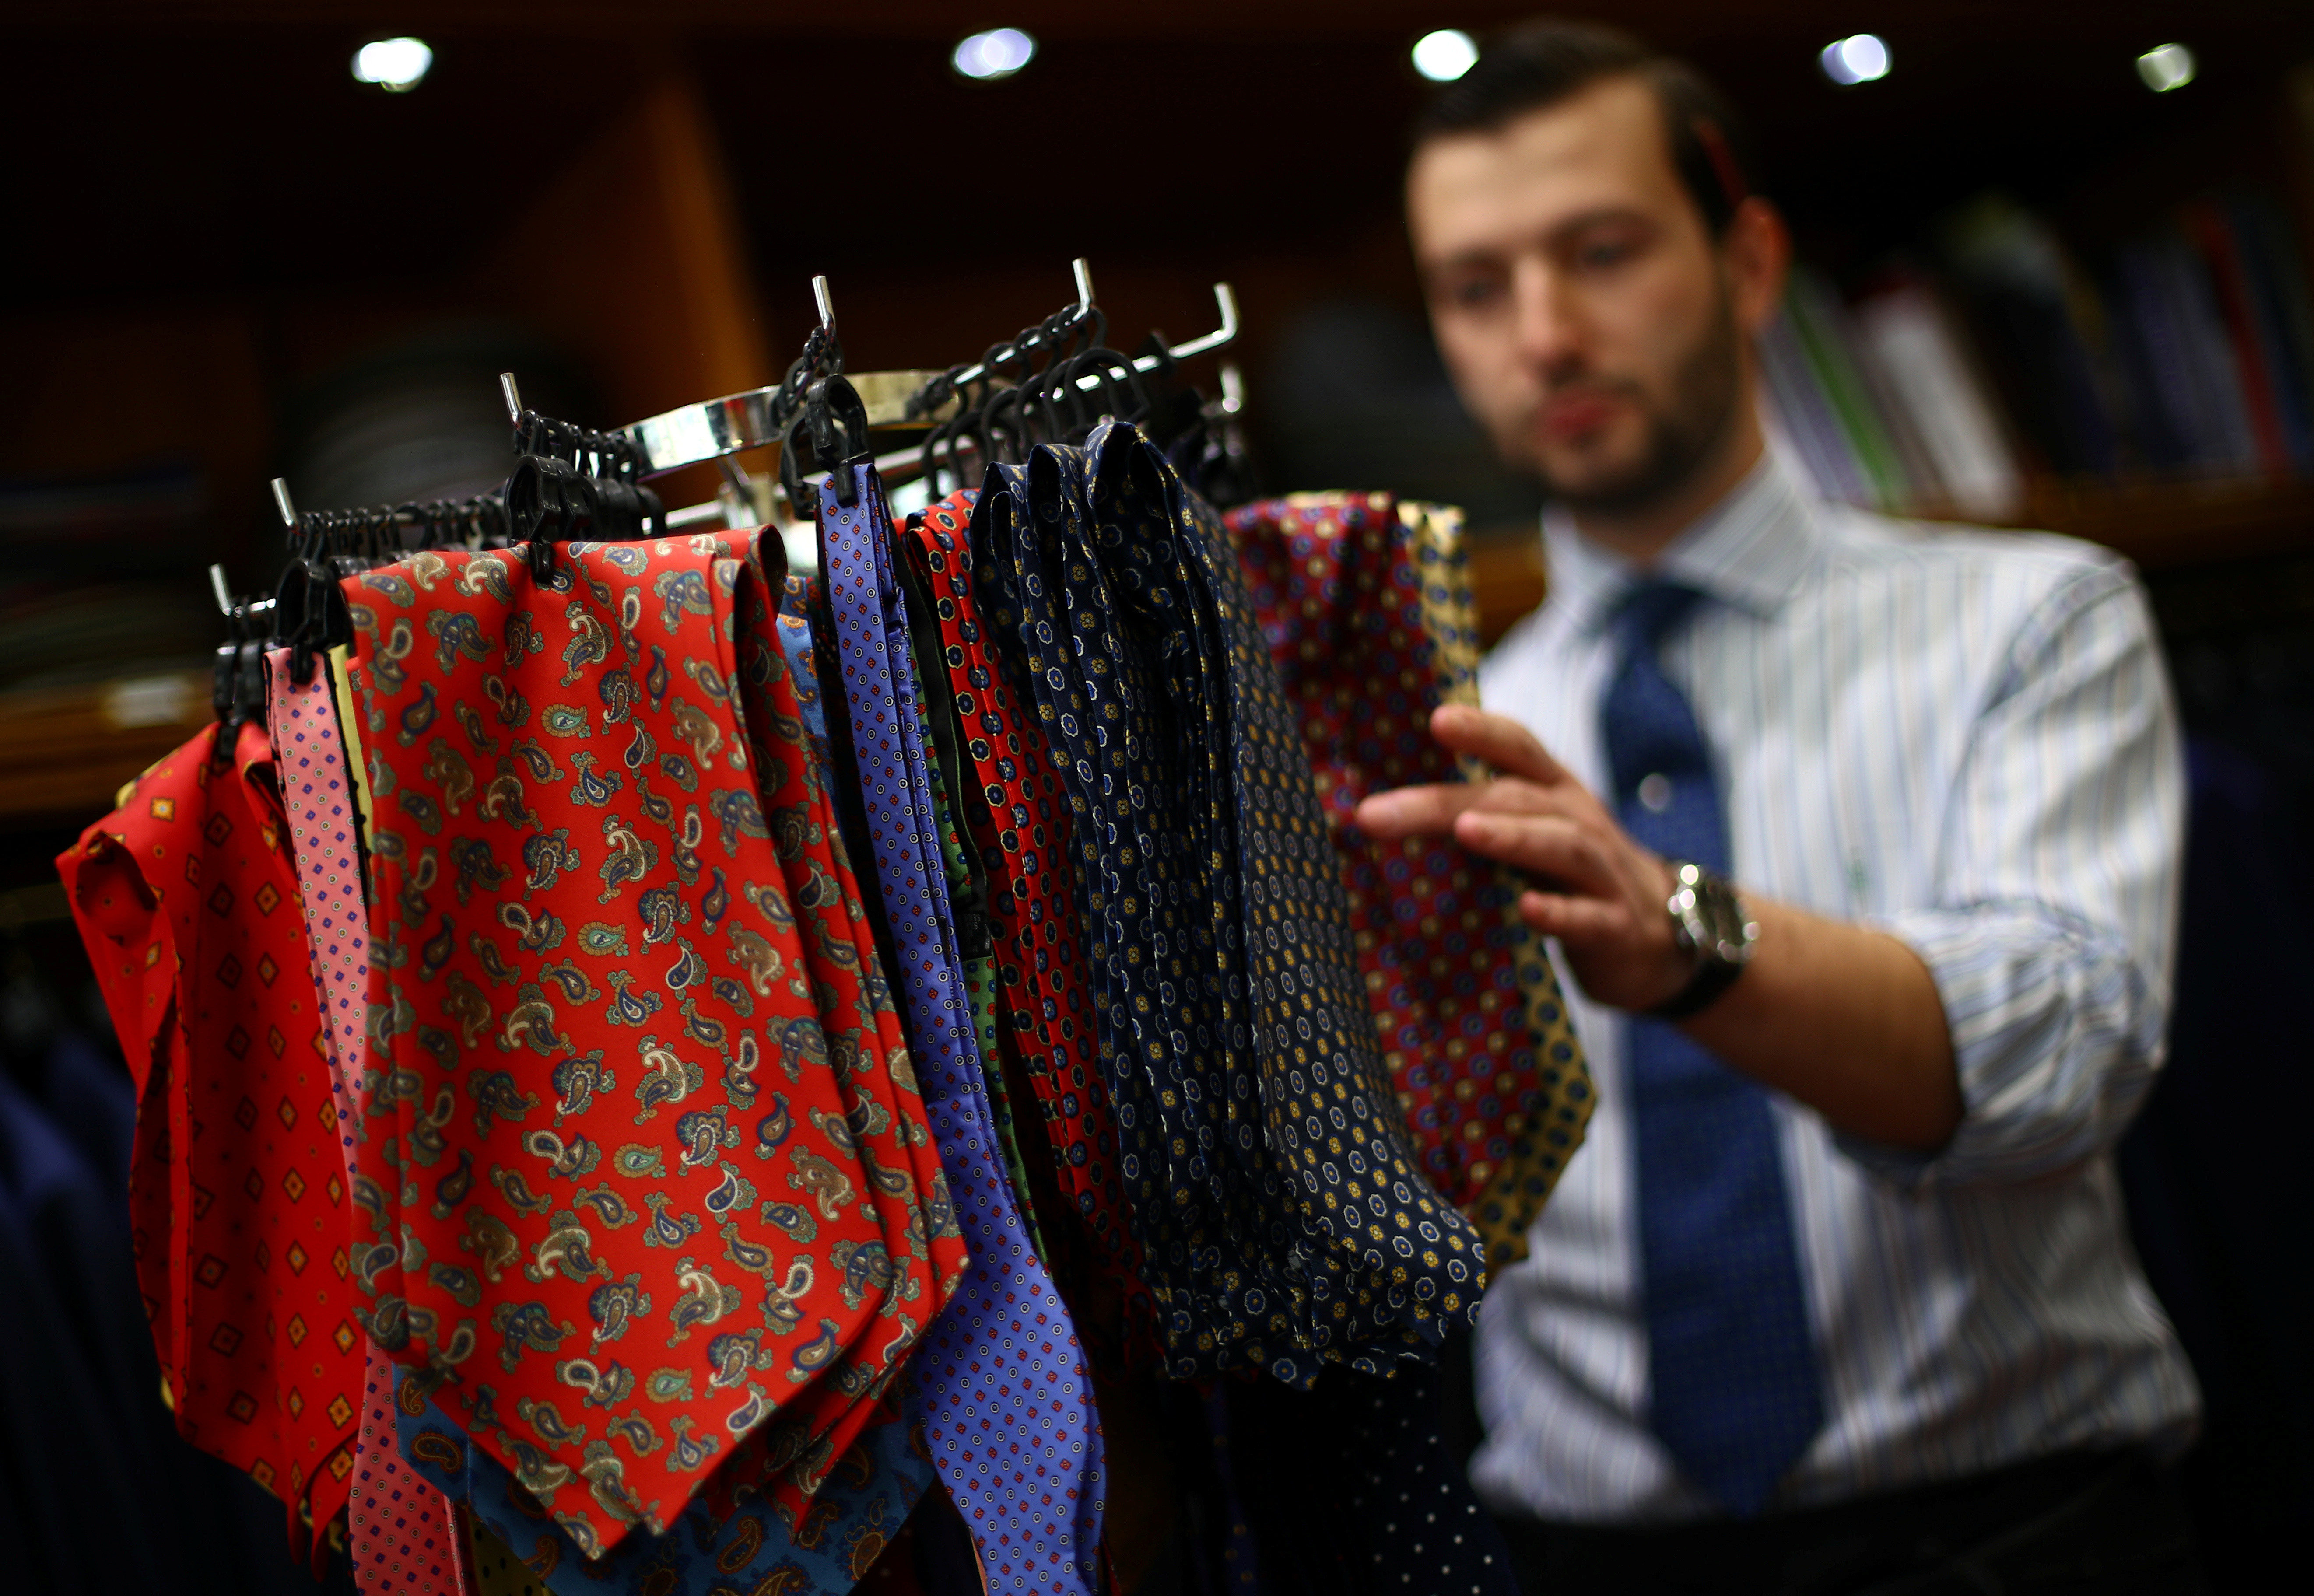 fashion industry covid coronavirus supliers supply chain retail formal weddings parties events work working remote remotely wfh from home change dressed dress pjs informal suit tie suited booted shirt